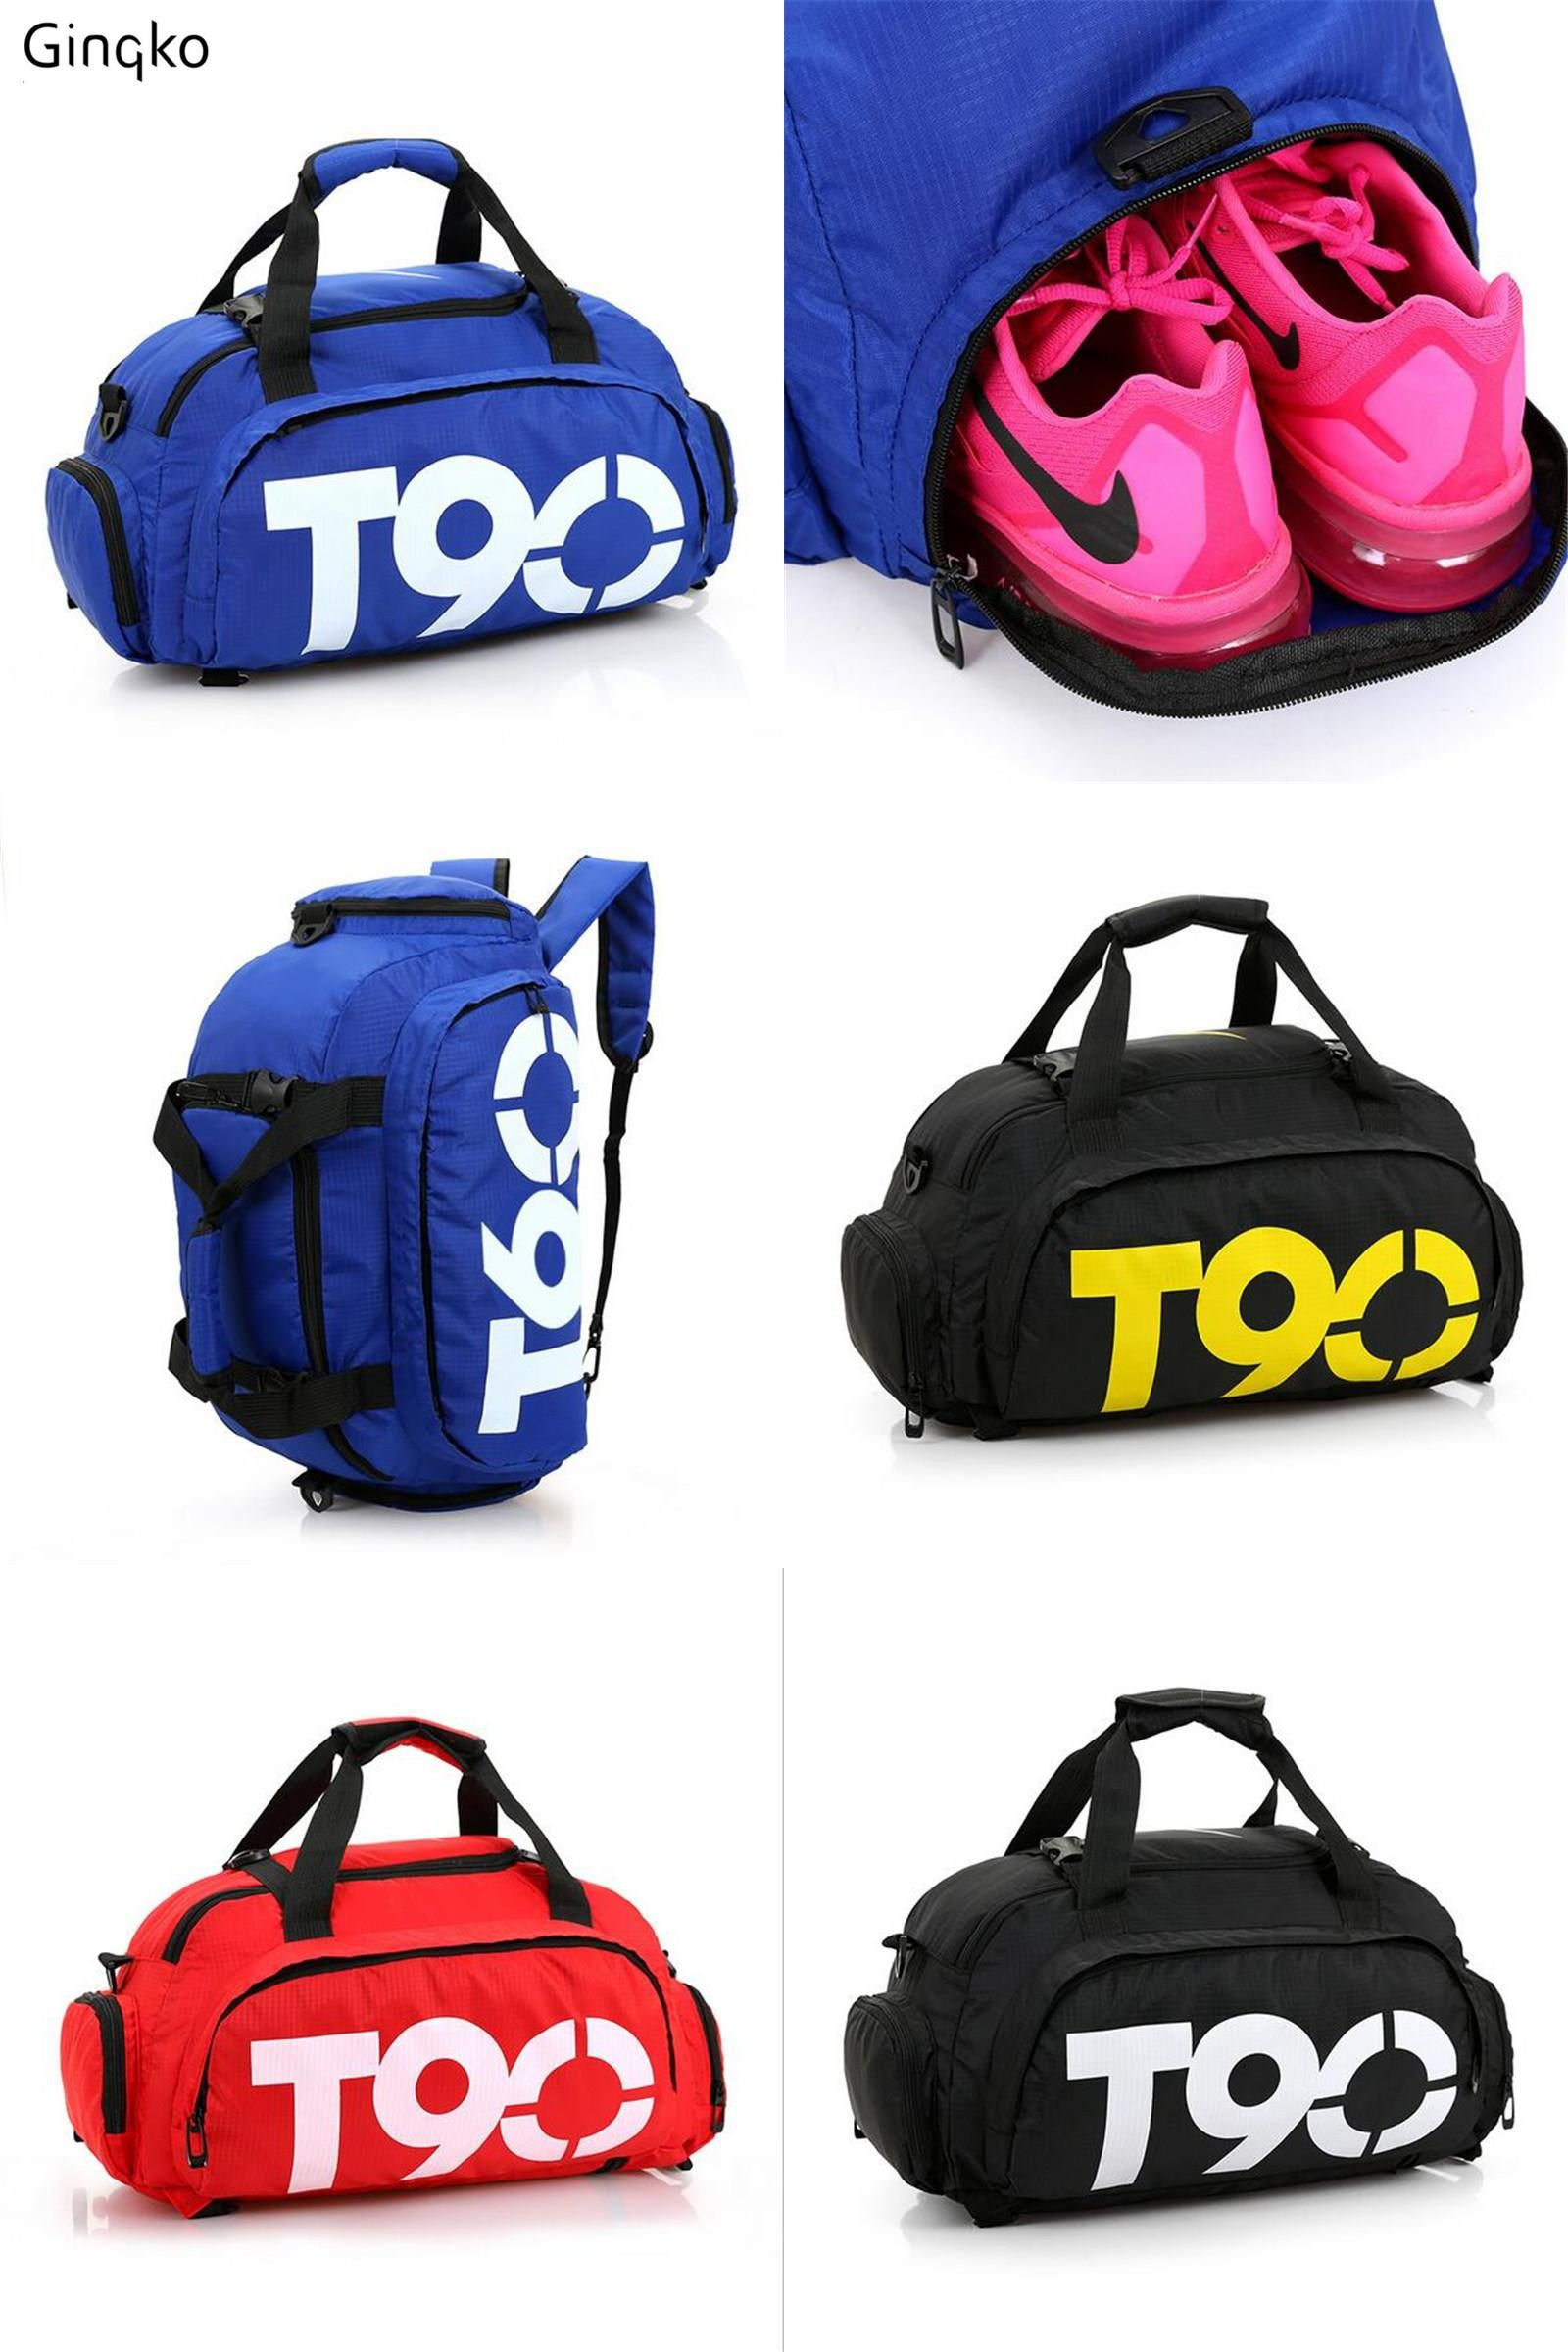 4a47c2ca1 Visit to Buy Gym Bags T60 Waterproof Outdoor T90 Ginko Women